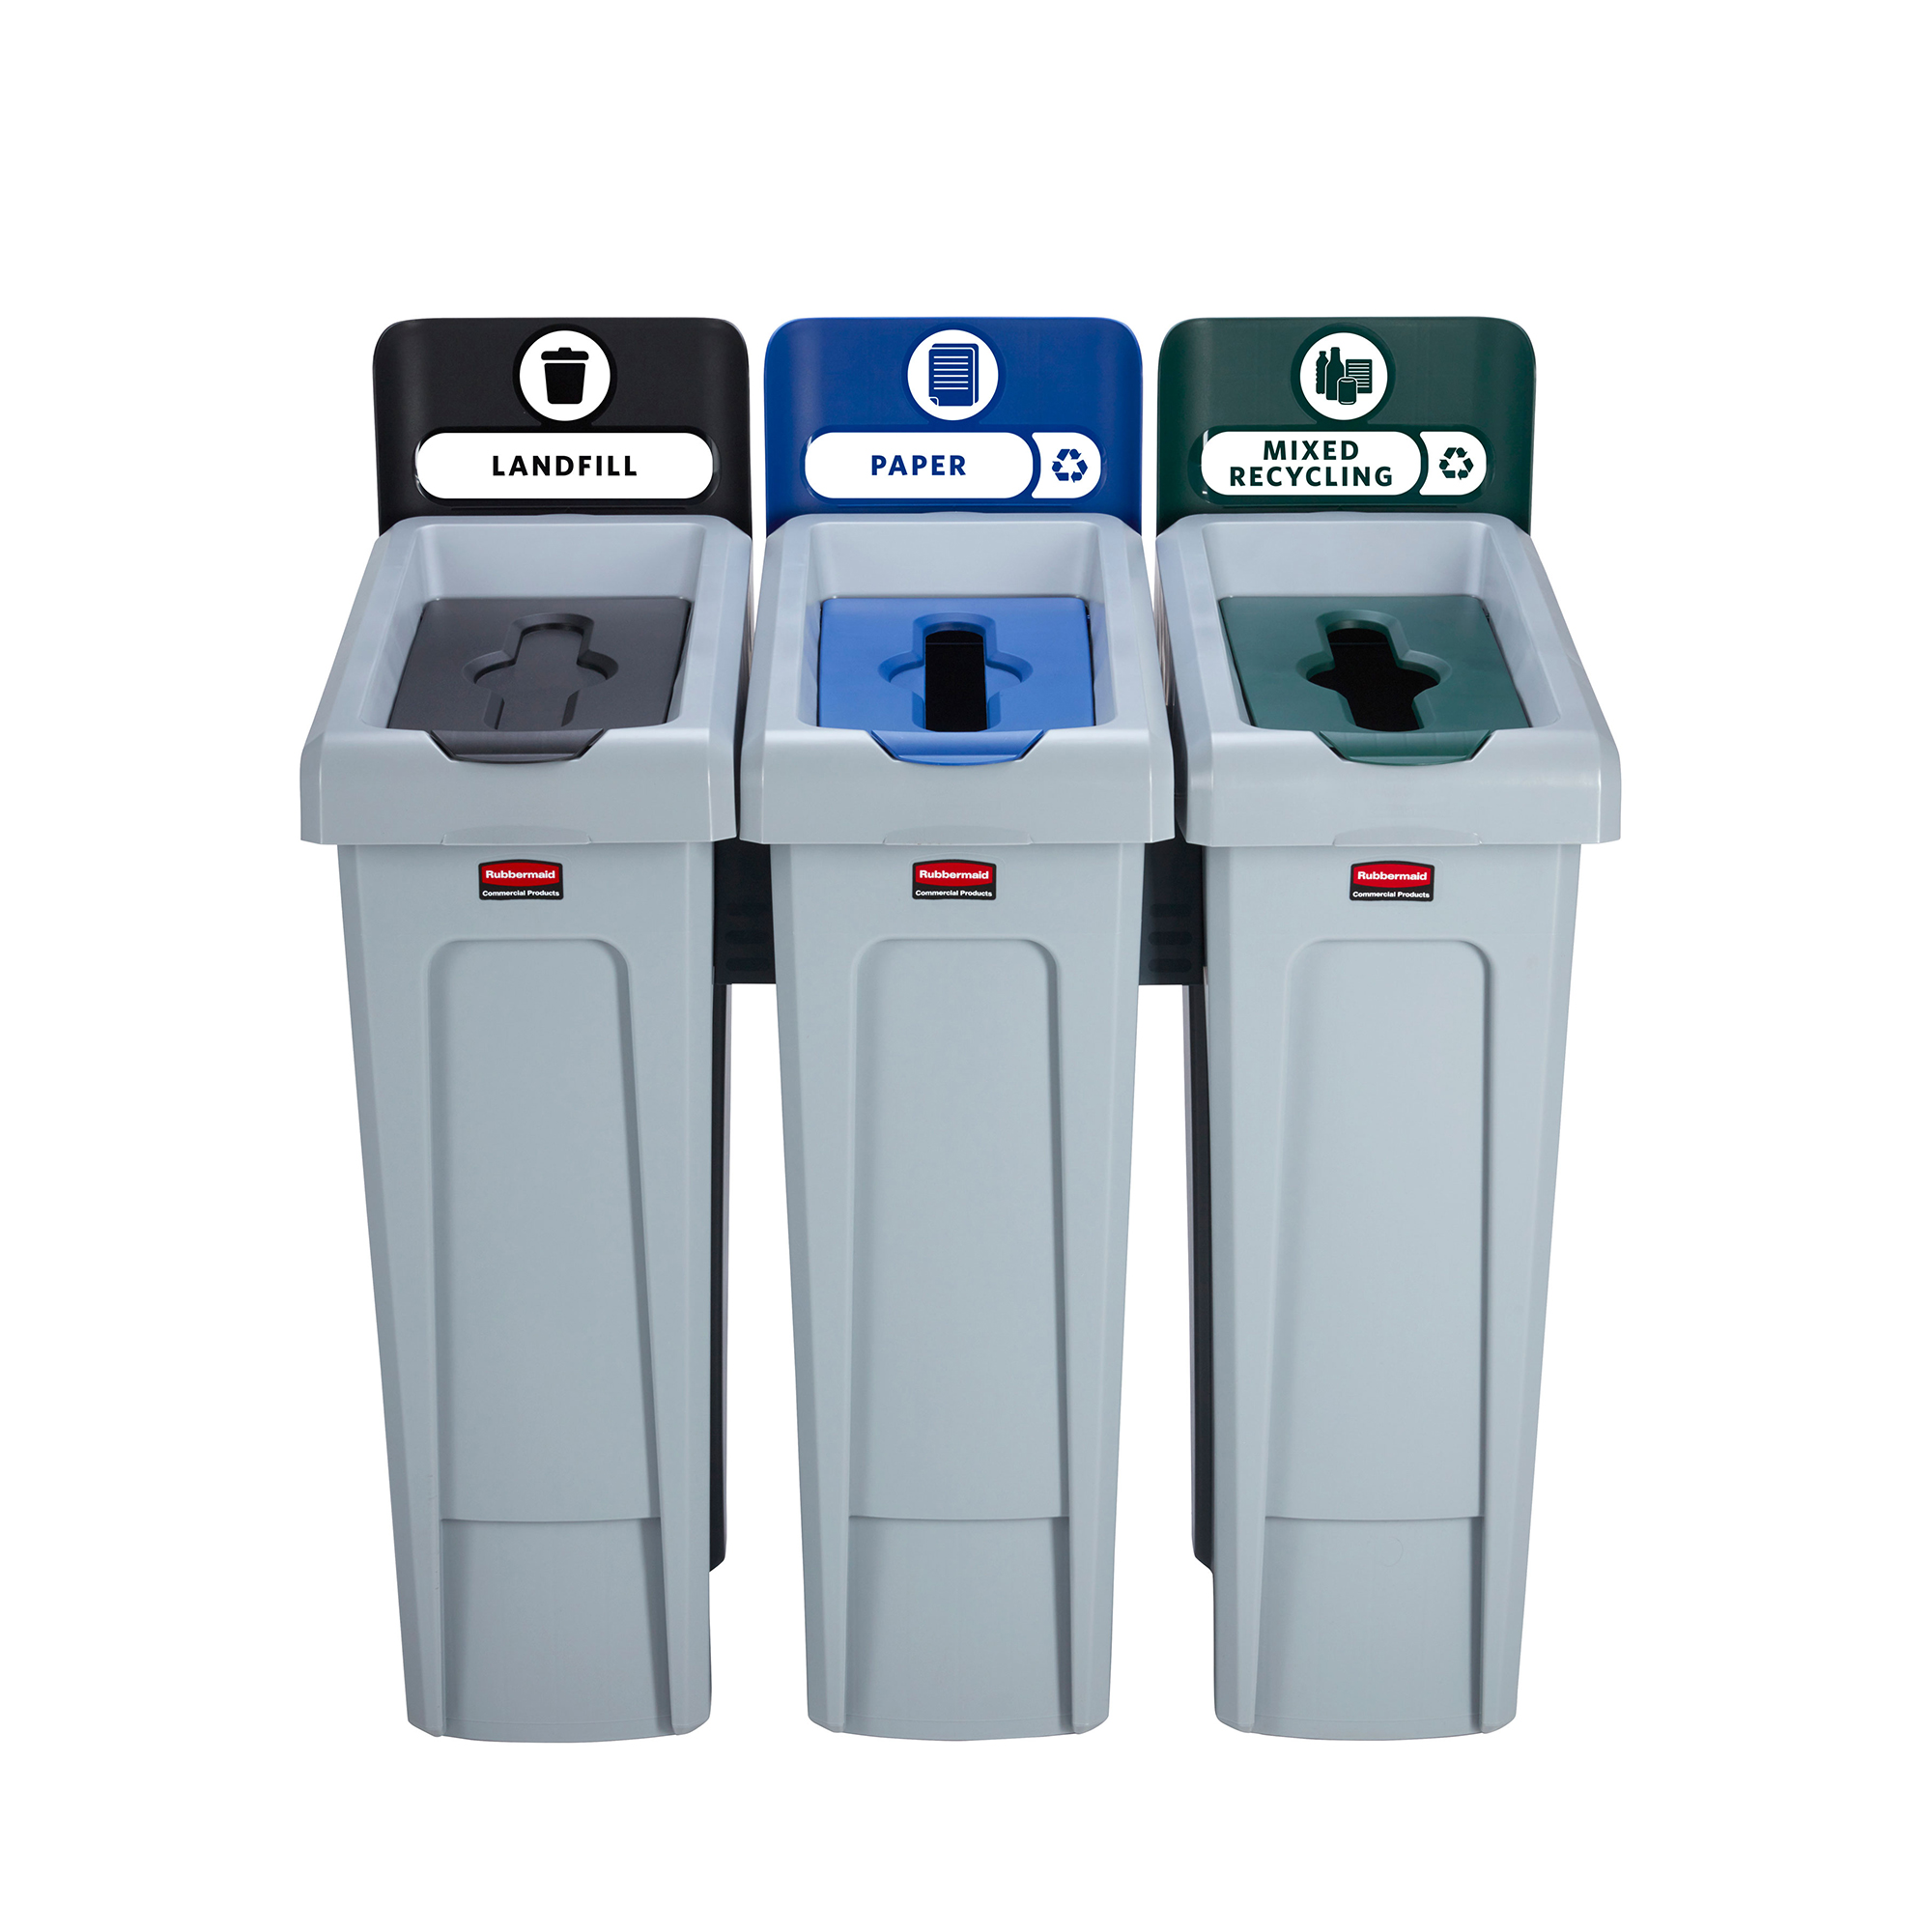 Recycling Bins Slim Jim Recycling Station 3 Stream 914x546x1022mm Ref 2057606